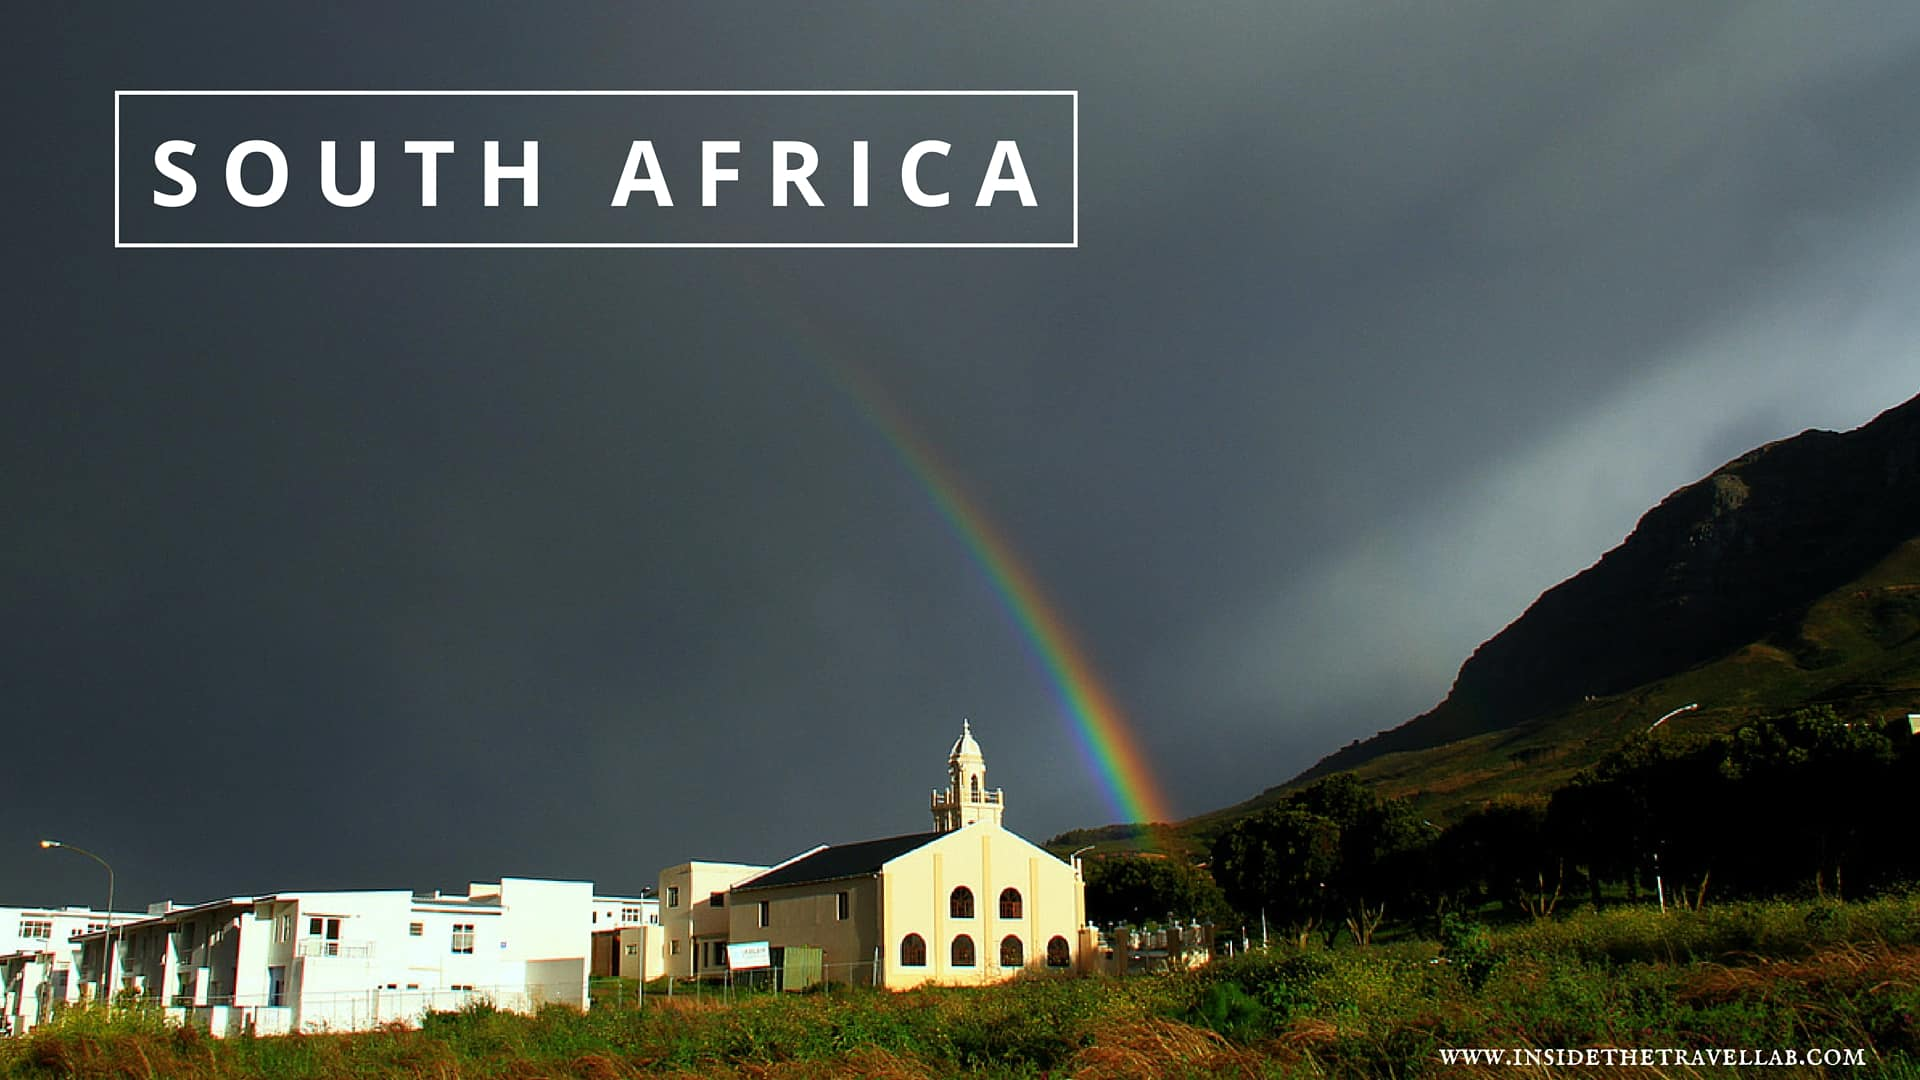 The best places to visit in South Africa via @insidetravellab